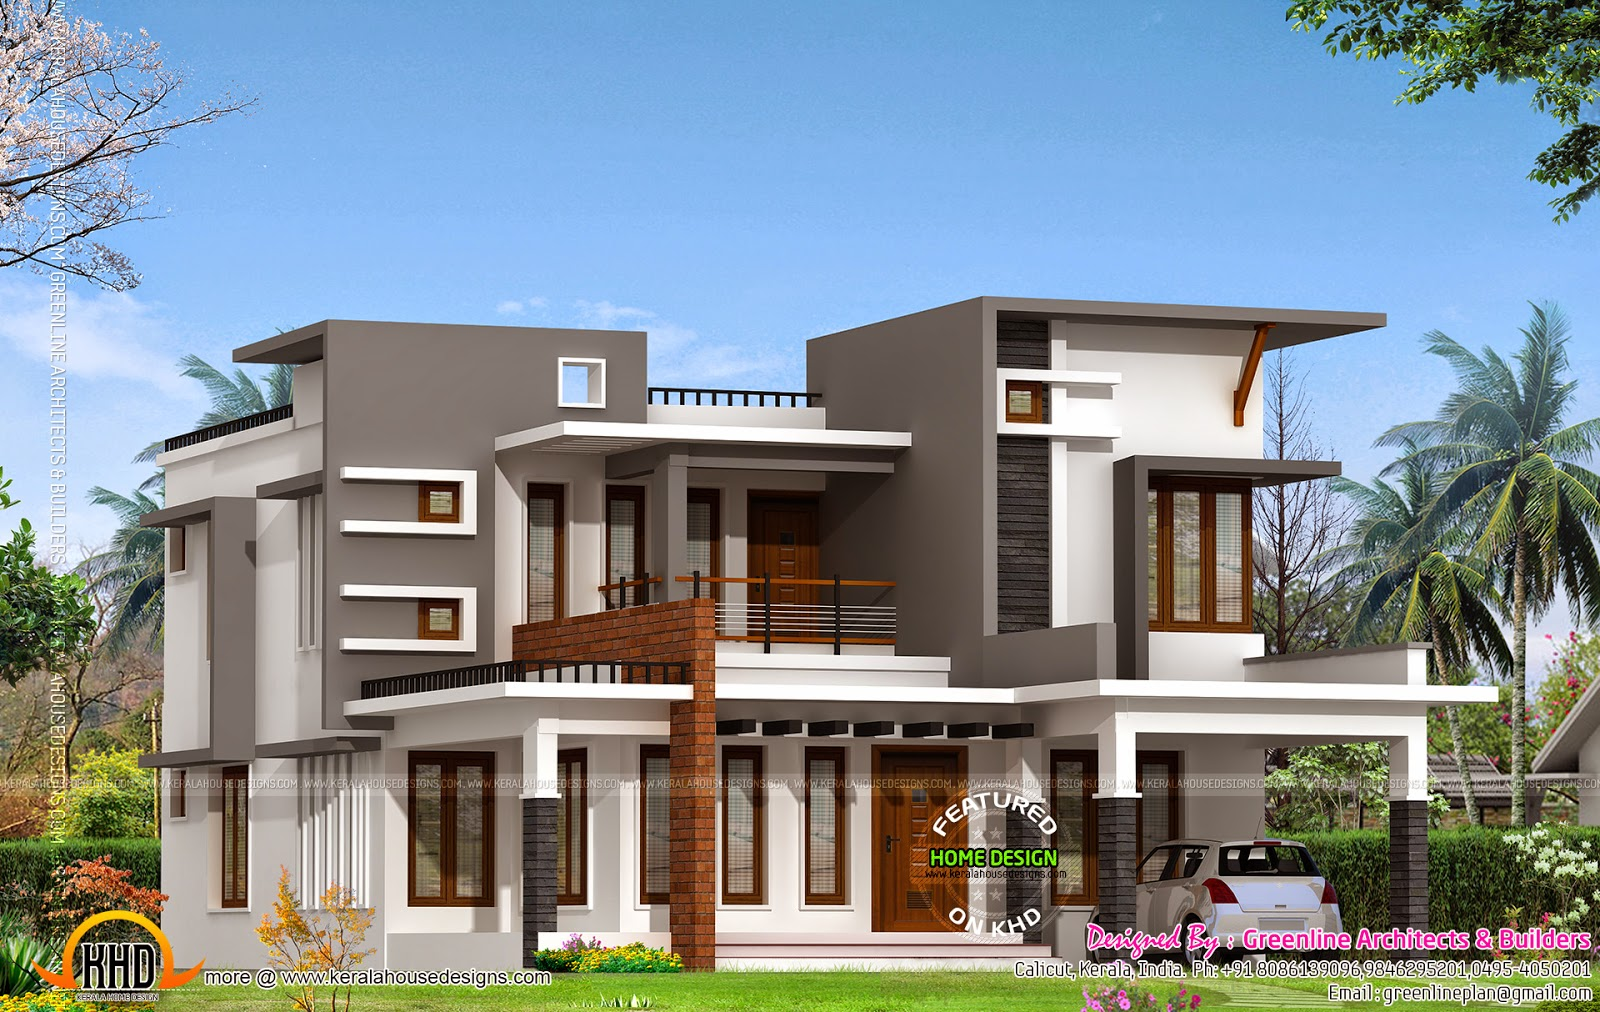 Contemporary house with estimate cost 28 lakhs kerala for House plans with estimated cost to build in kerala